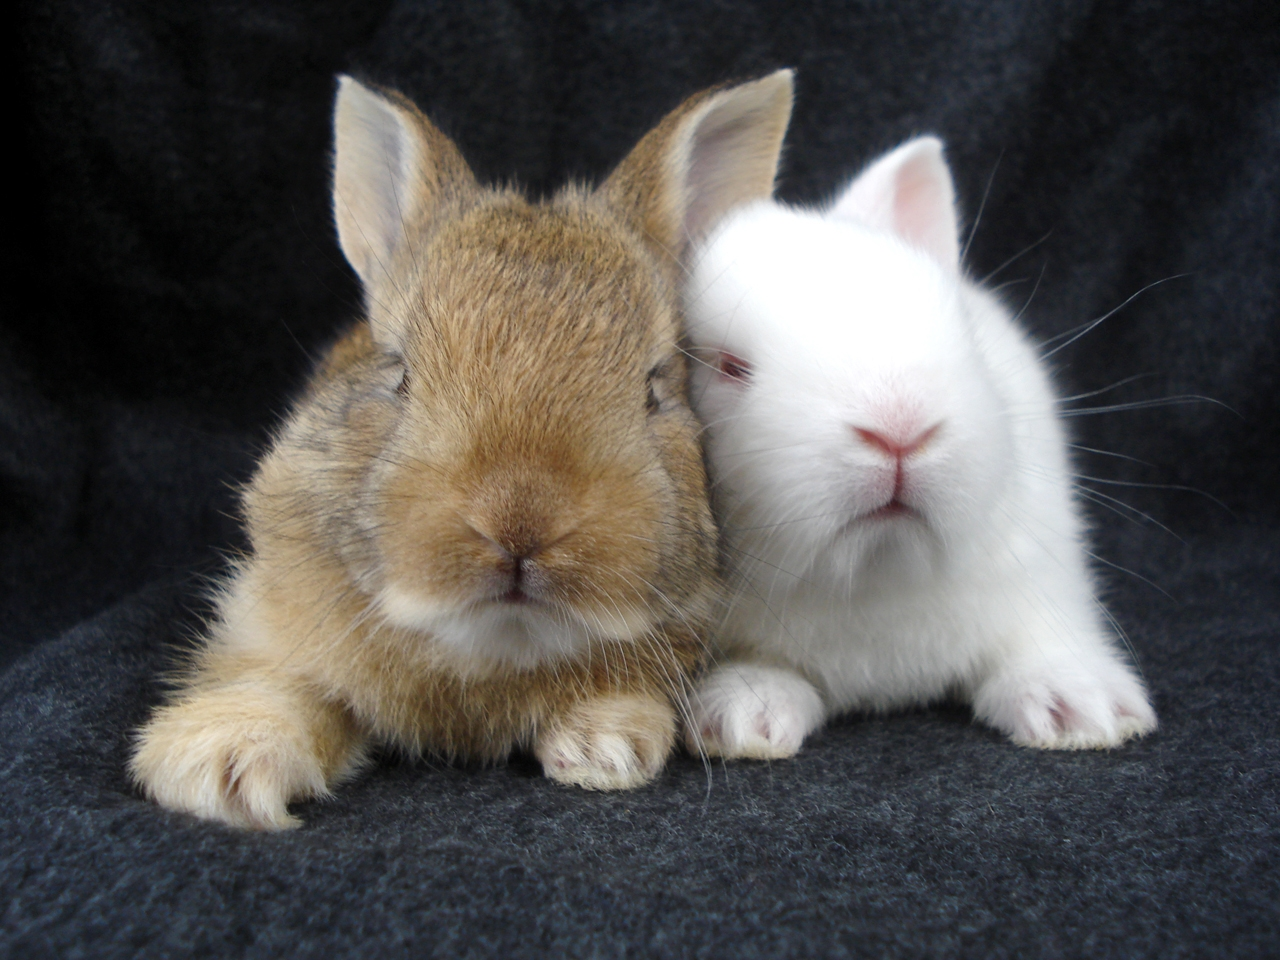 Funny and cute rabbits 13